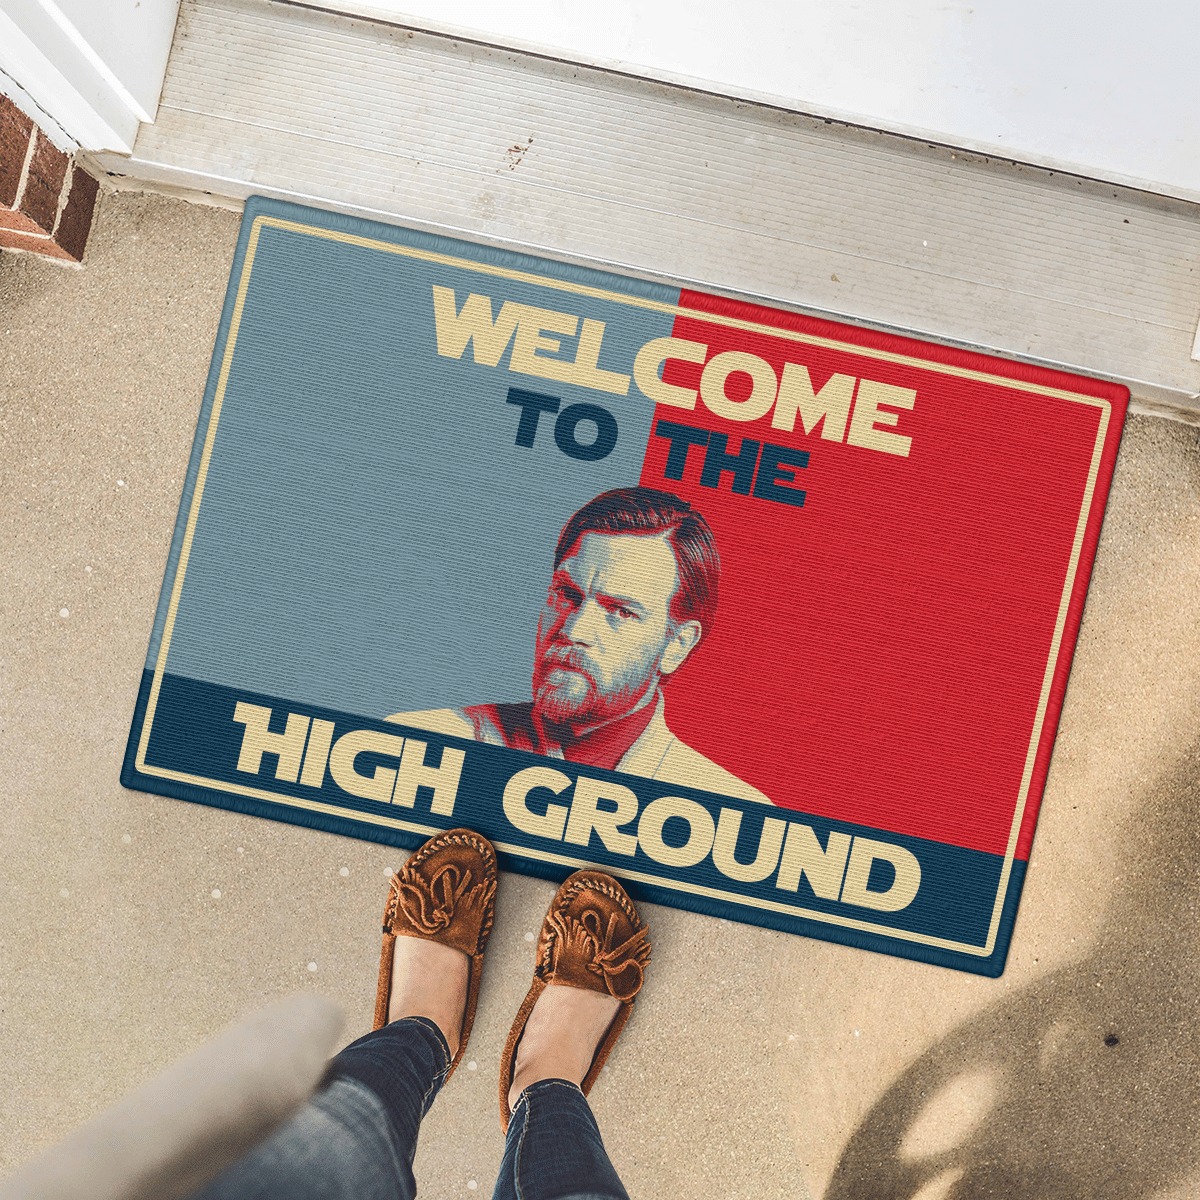 Welcome to the high ground doormat 1